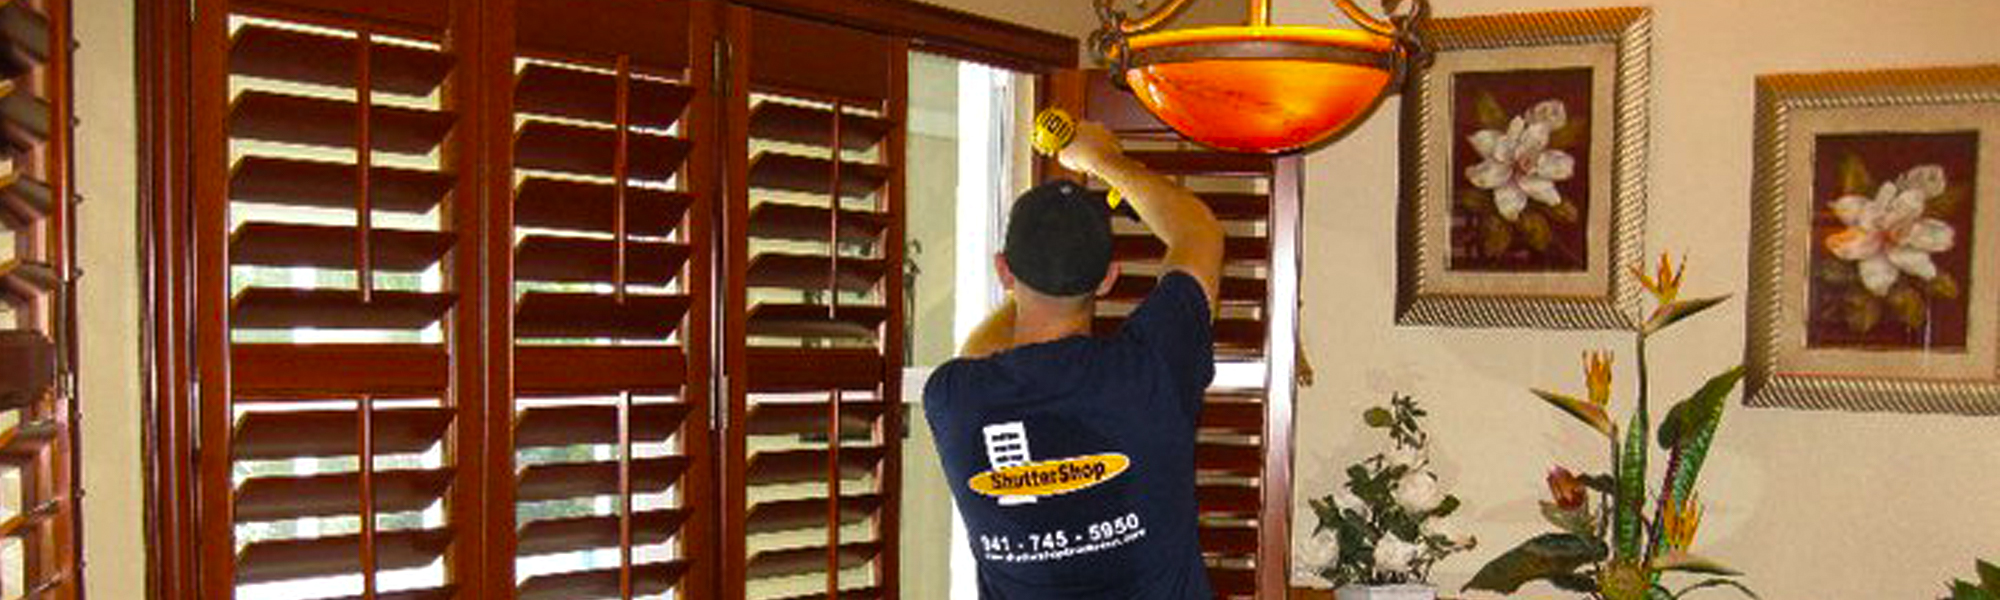 ShutterShop Bradenton FL - Installation - Window Blinds